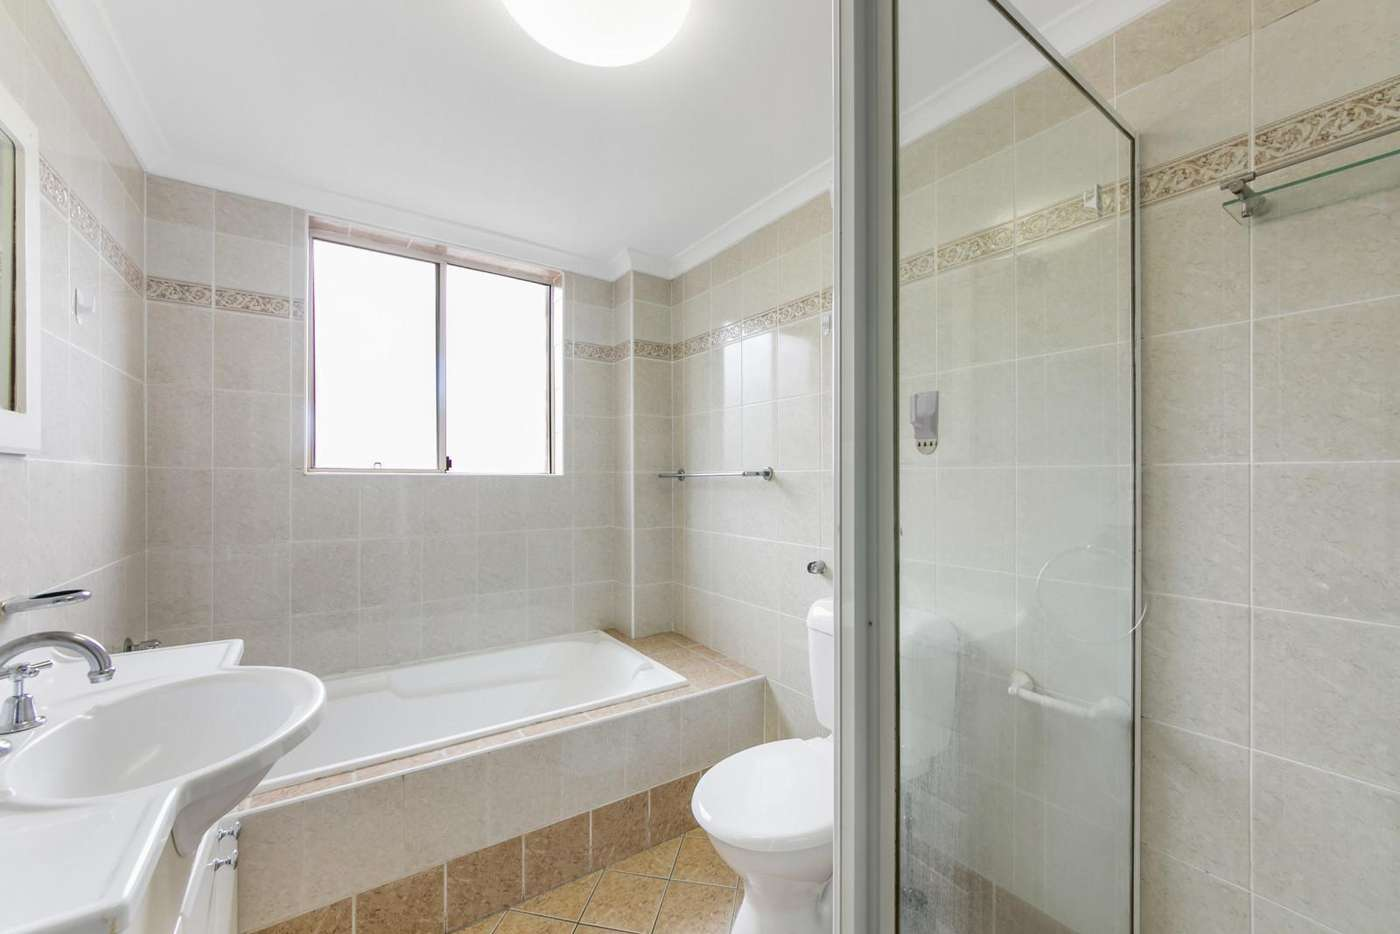 Sixth view of Homely apartment listing, 4/78 Brancourt Avenue, Yagoona NSW 2199